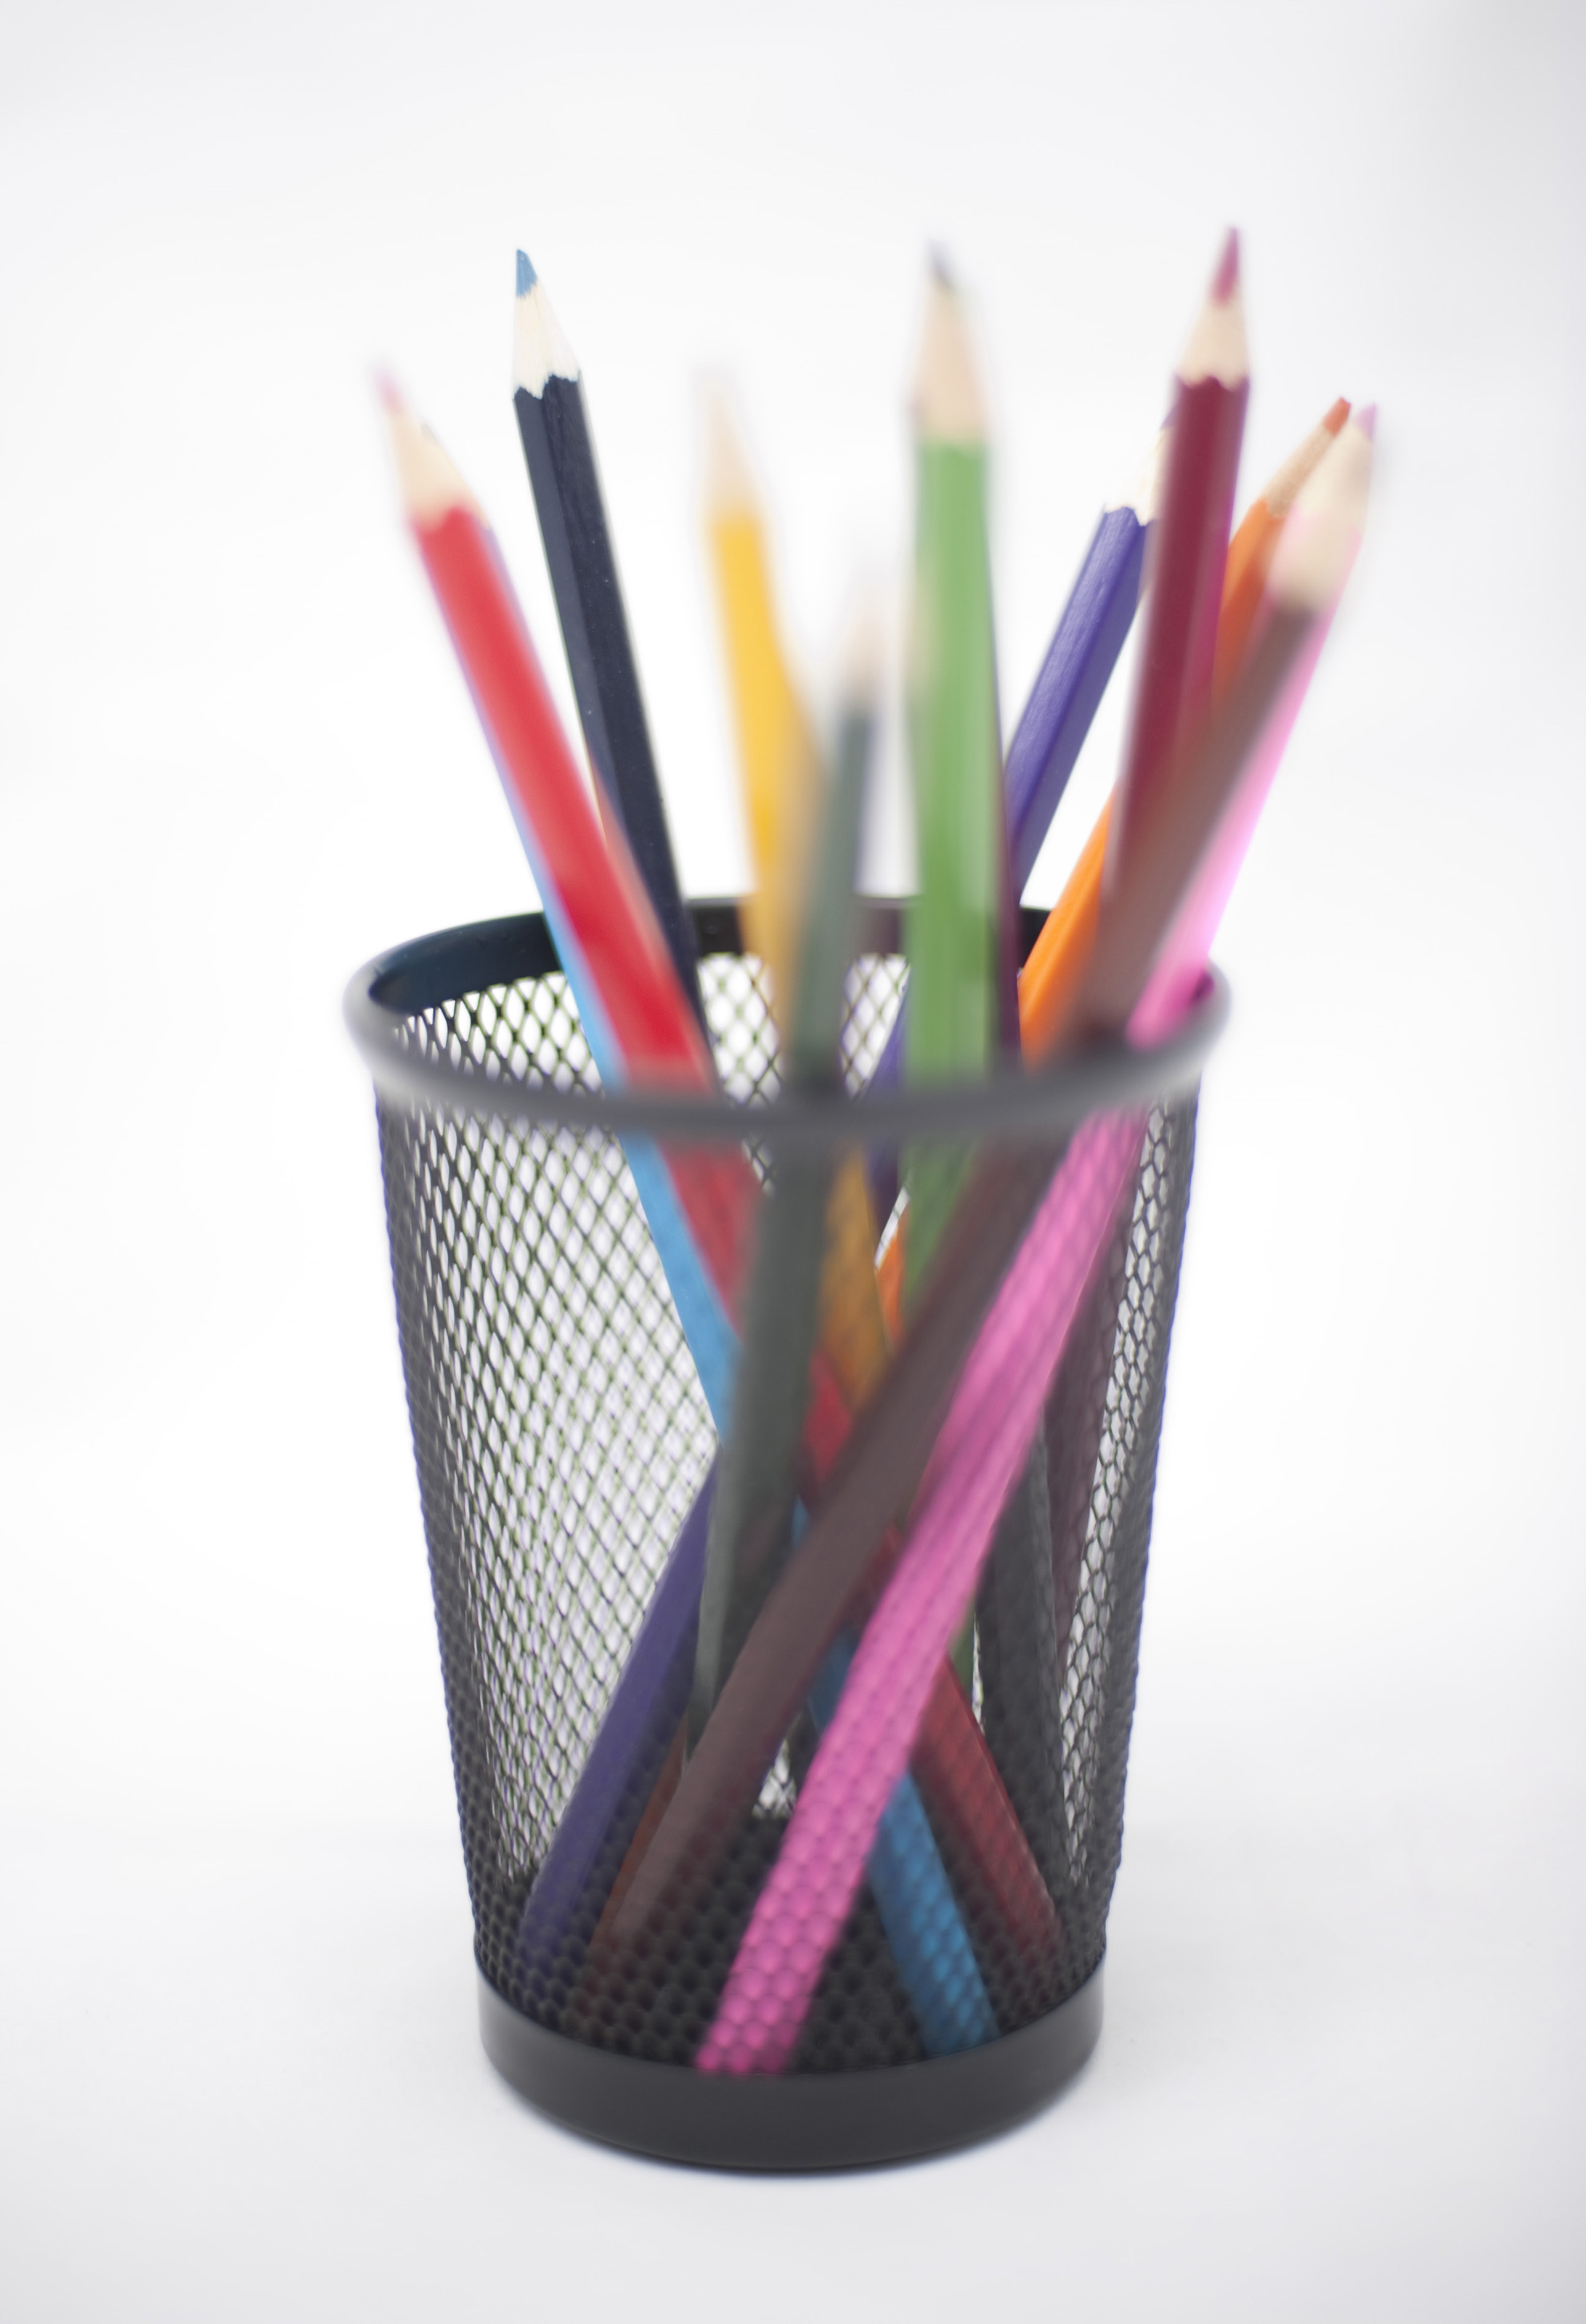 Colored pencils in black pencil basket - pictured with a shallow DOF